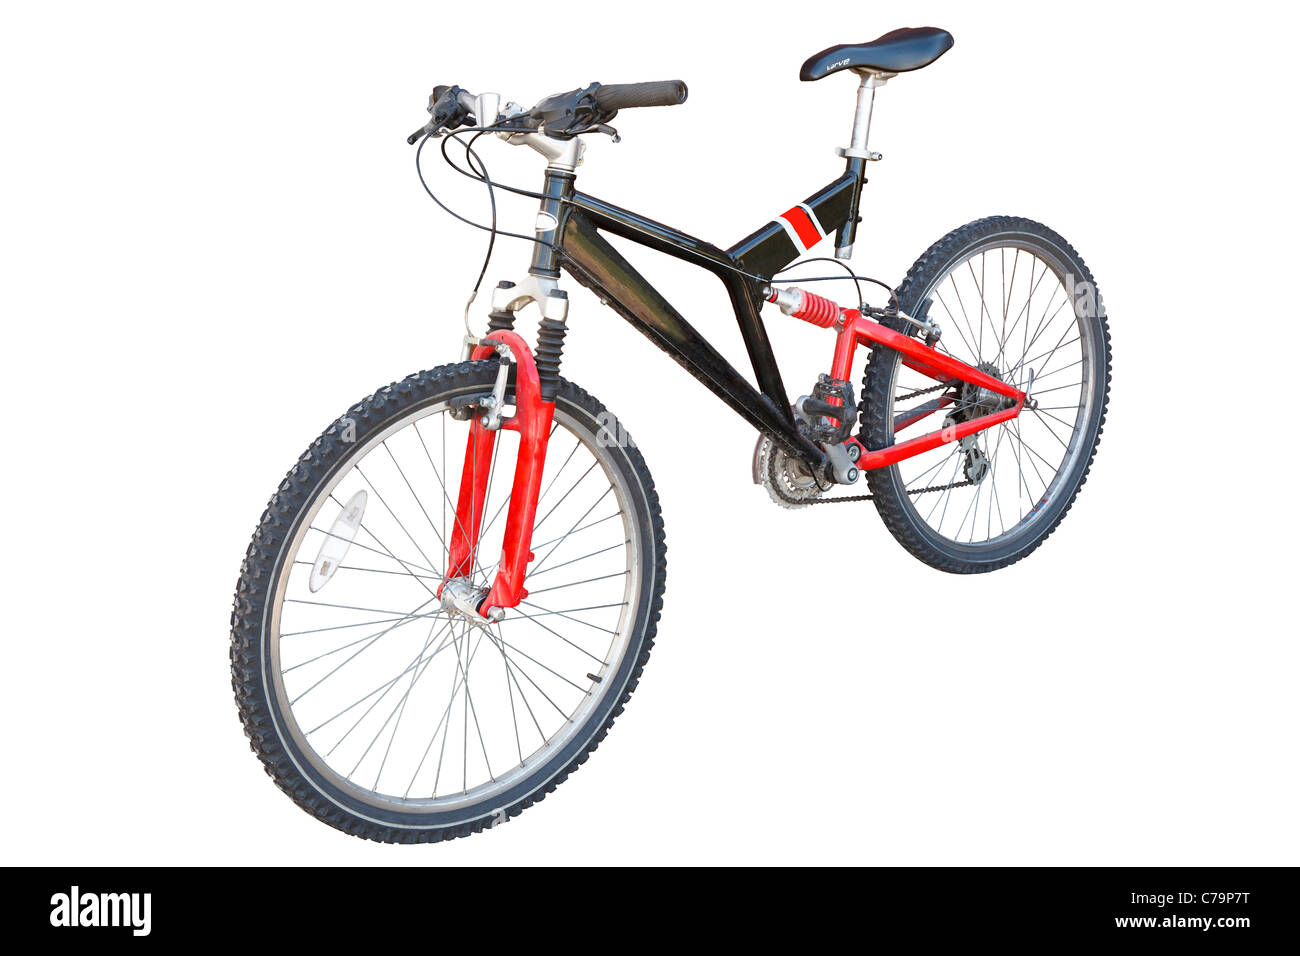 Red and Black Mountain/Off Road Bicycle Isolated on white with work path - Stock Image